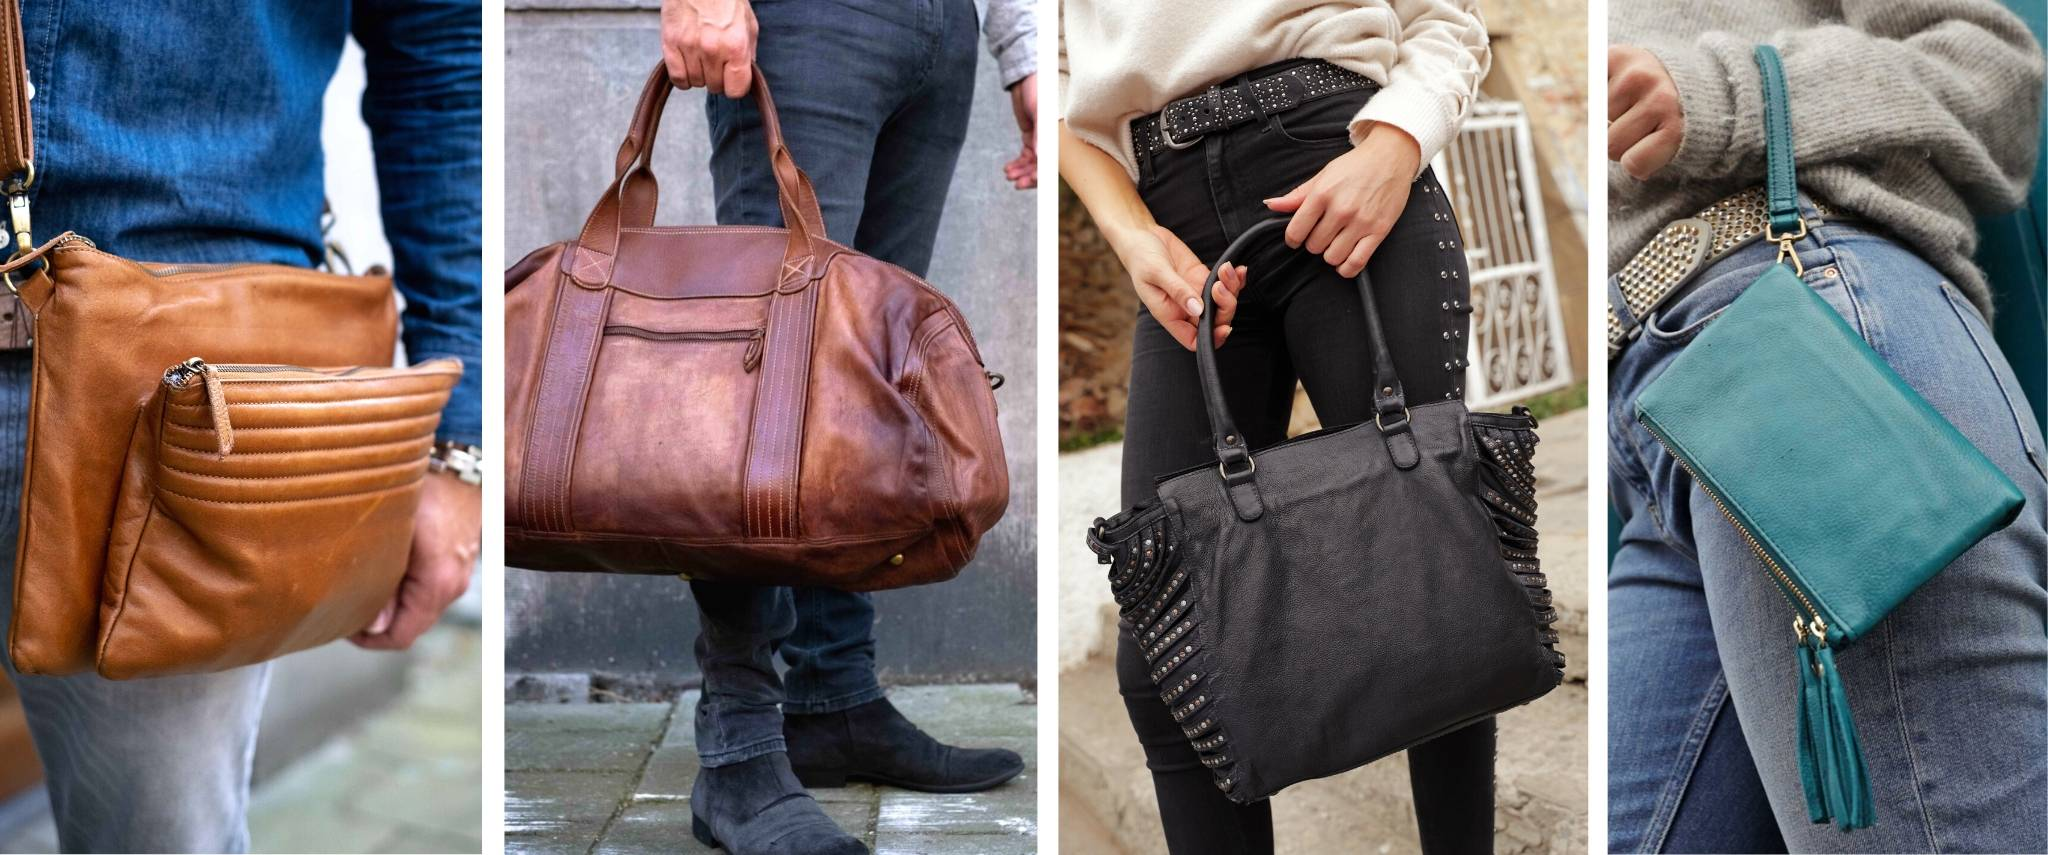 leather-bags-banner-label-aware